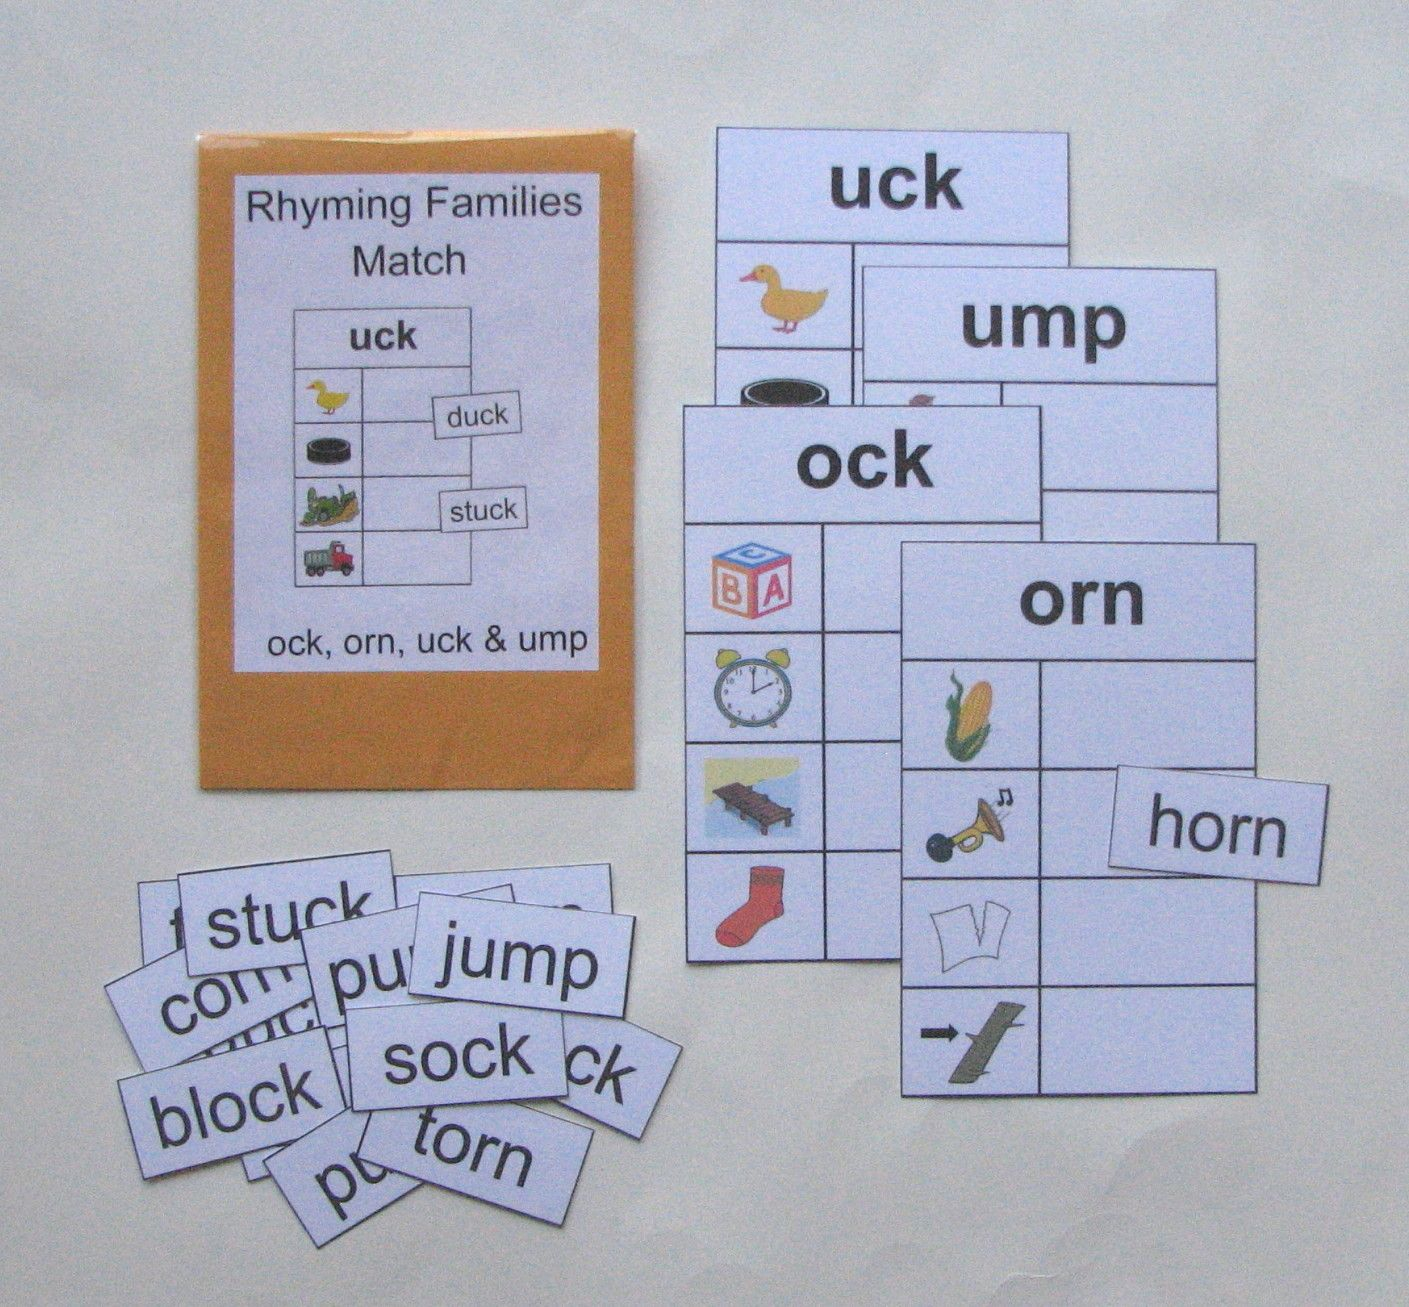 Rhyming Families Match Children Can Practice Working With